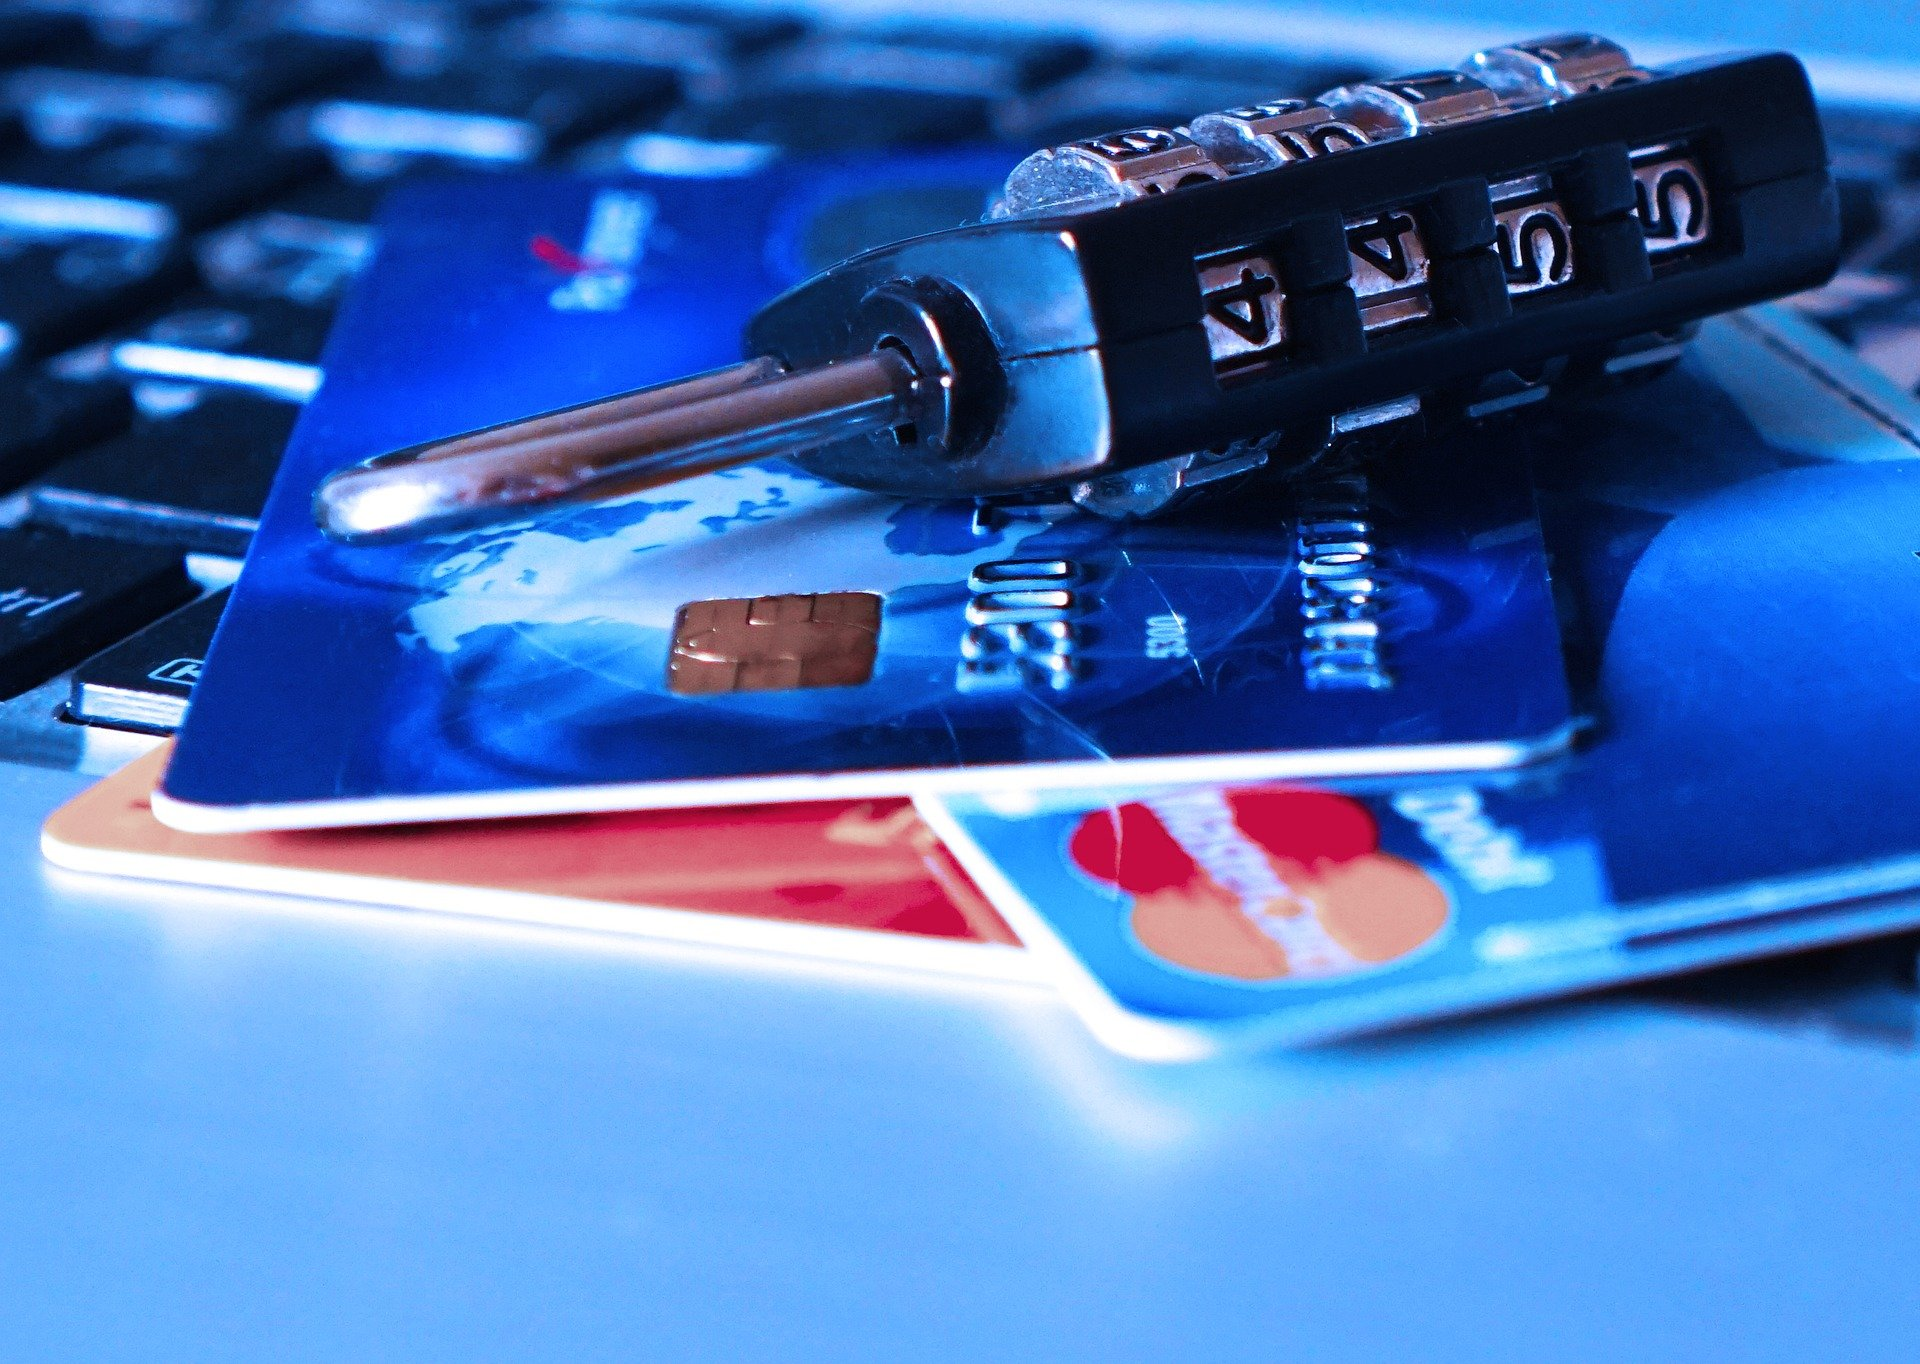 Credit Card For Online Purchase | Credit Card Generator Tool 2021